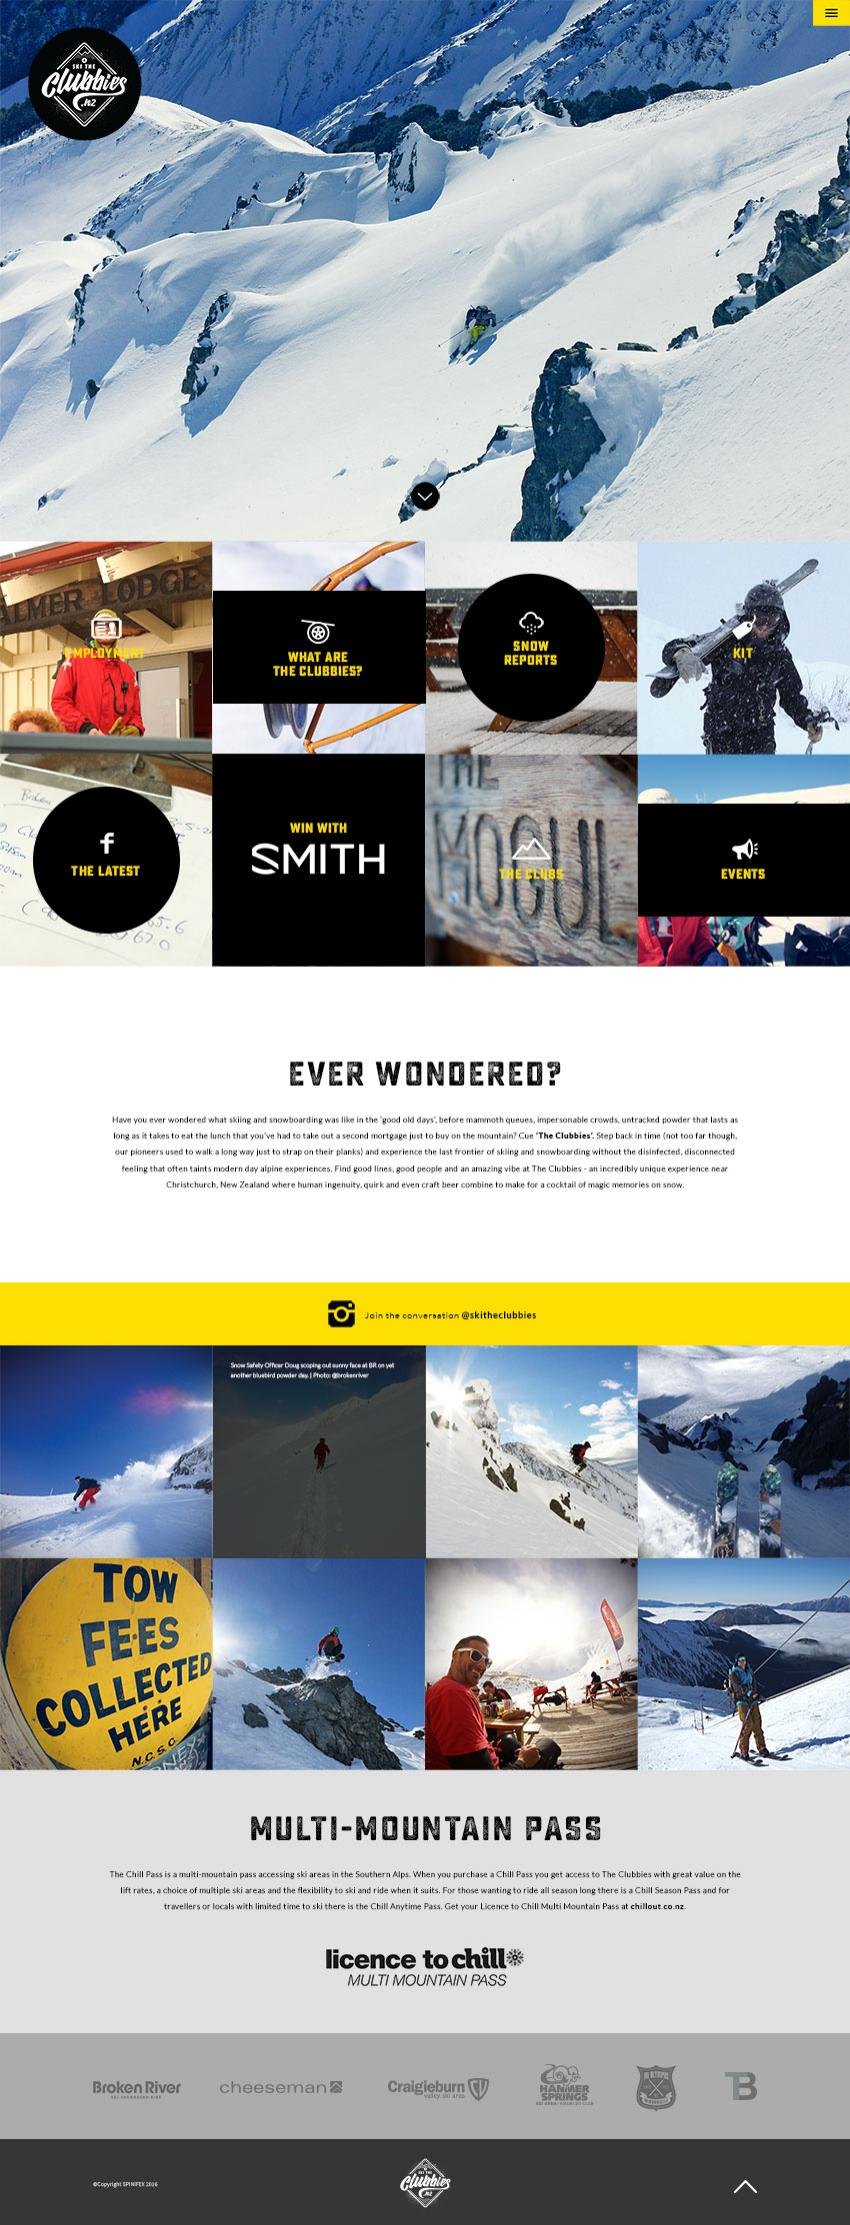 Ski The Clubbies Website Design